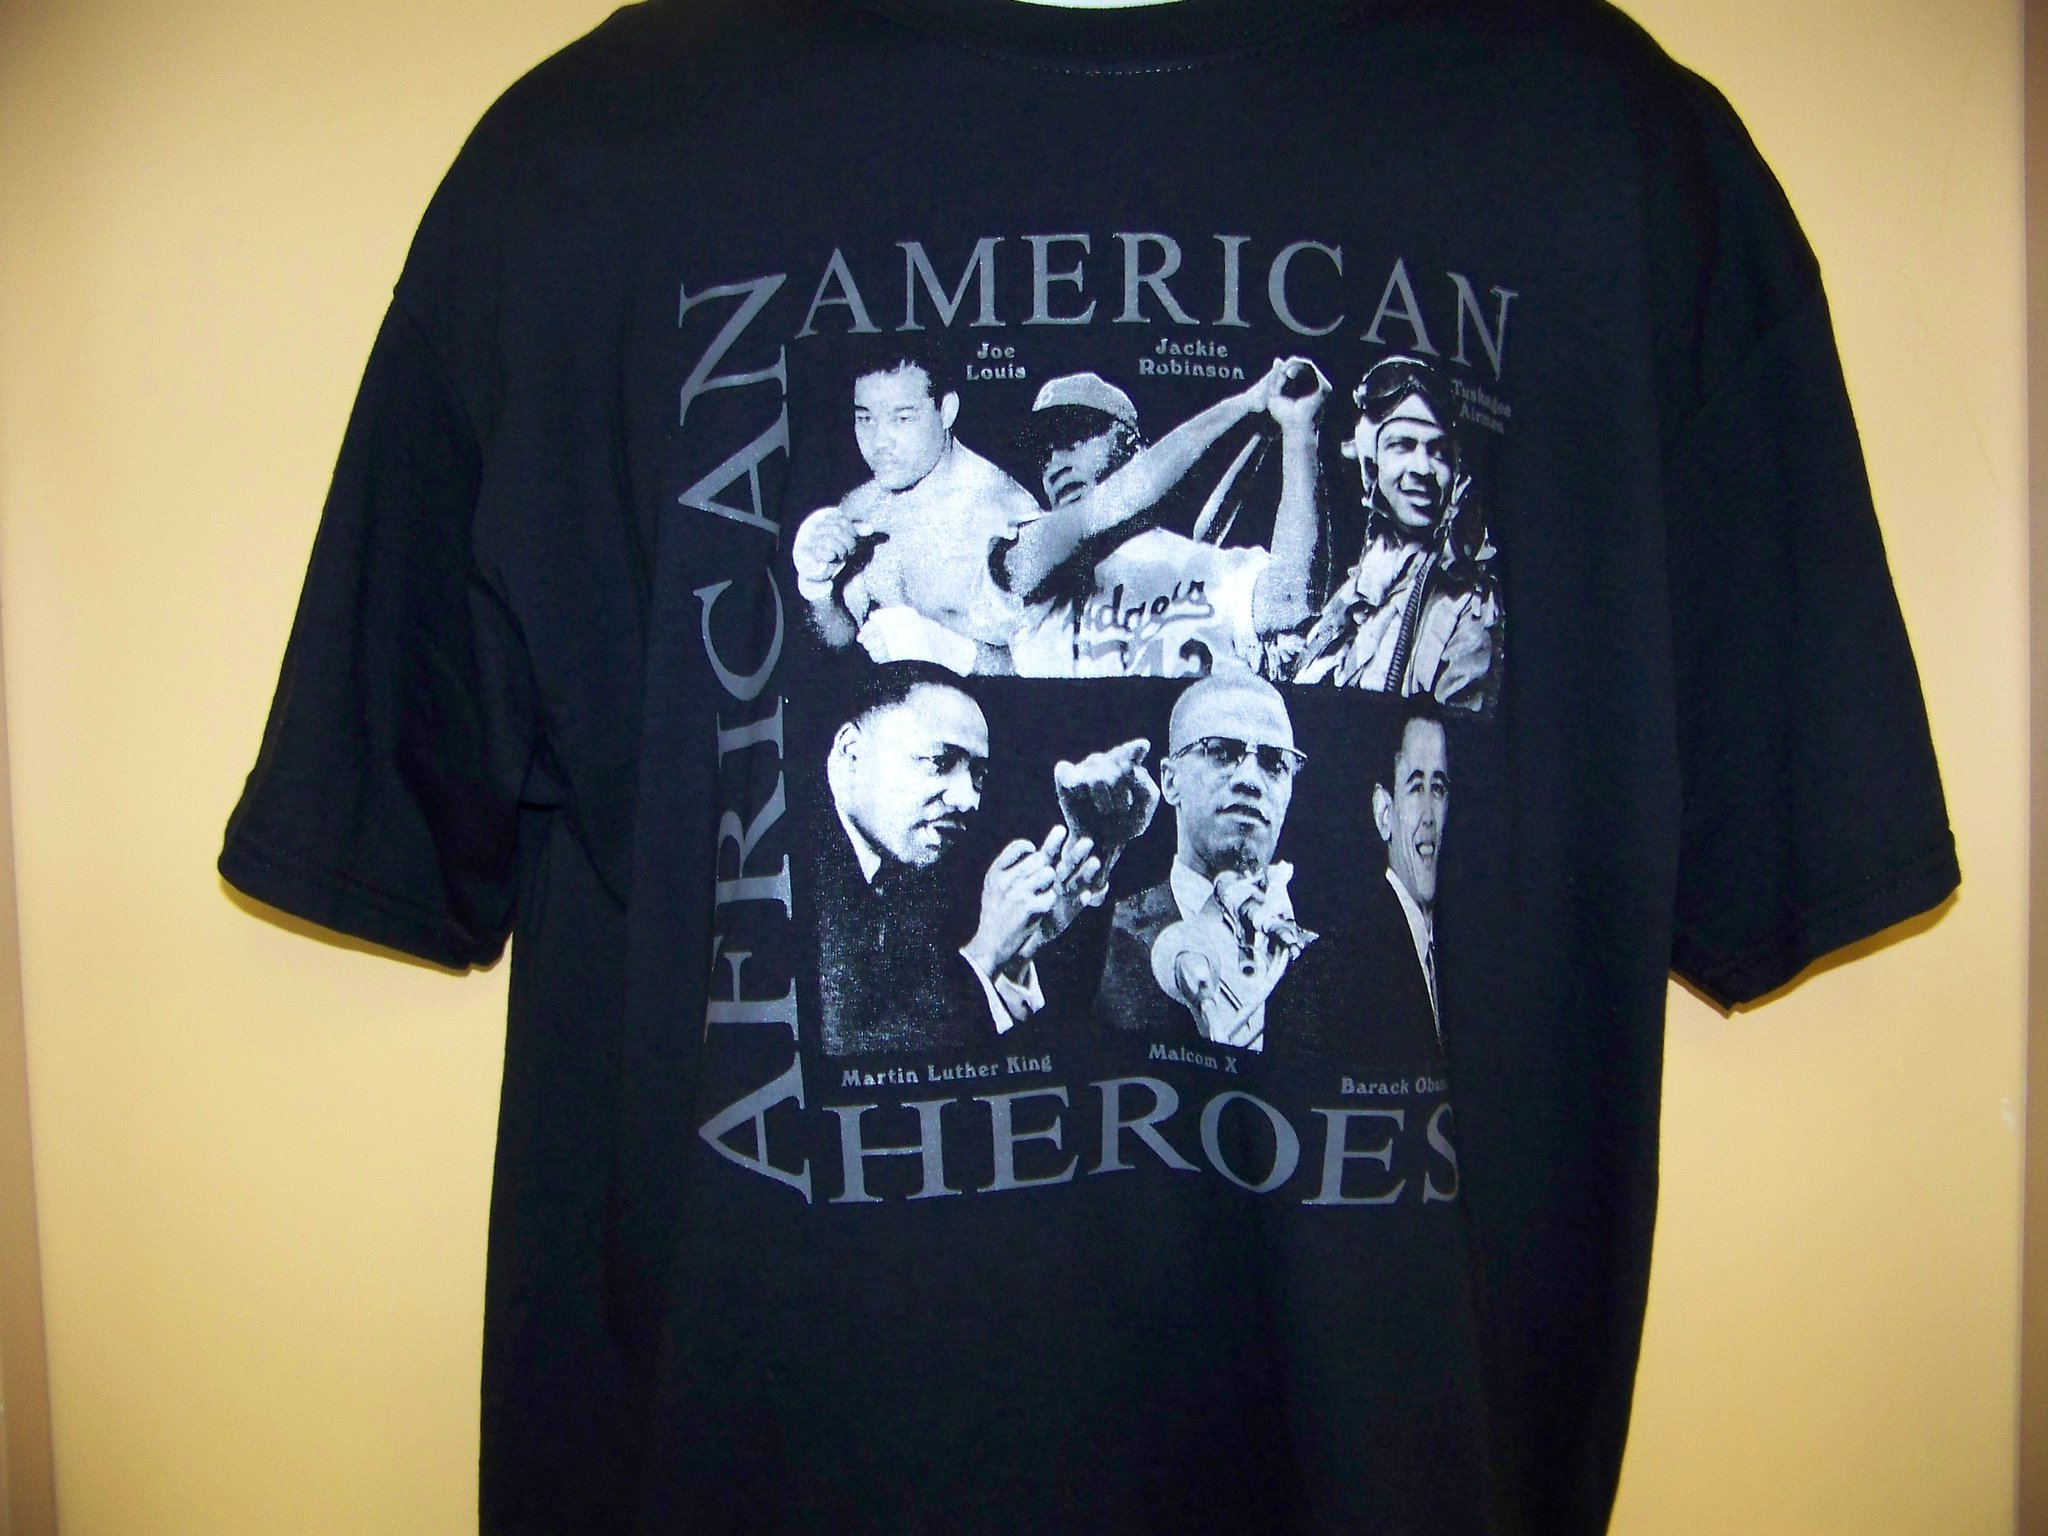 Storenvy coupon: African American History - African American Sports Heroes 2 Black T-Shirt